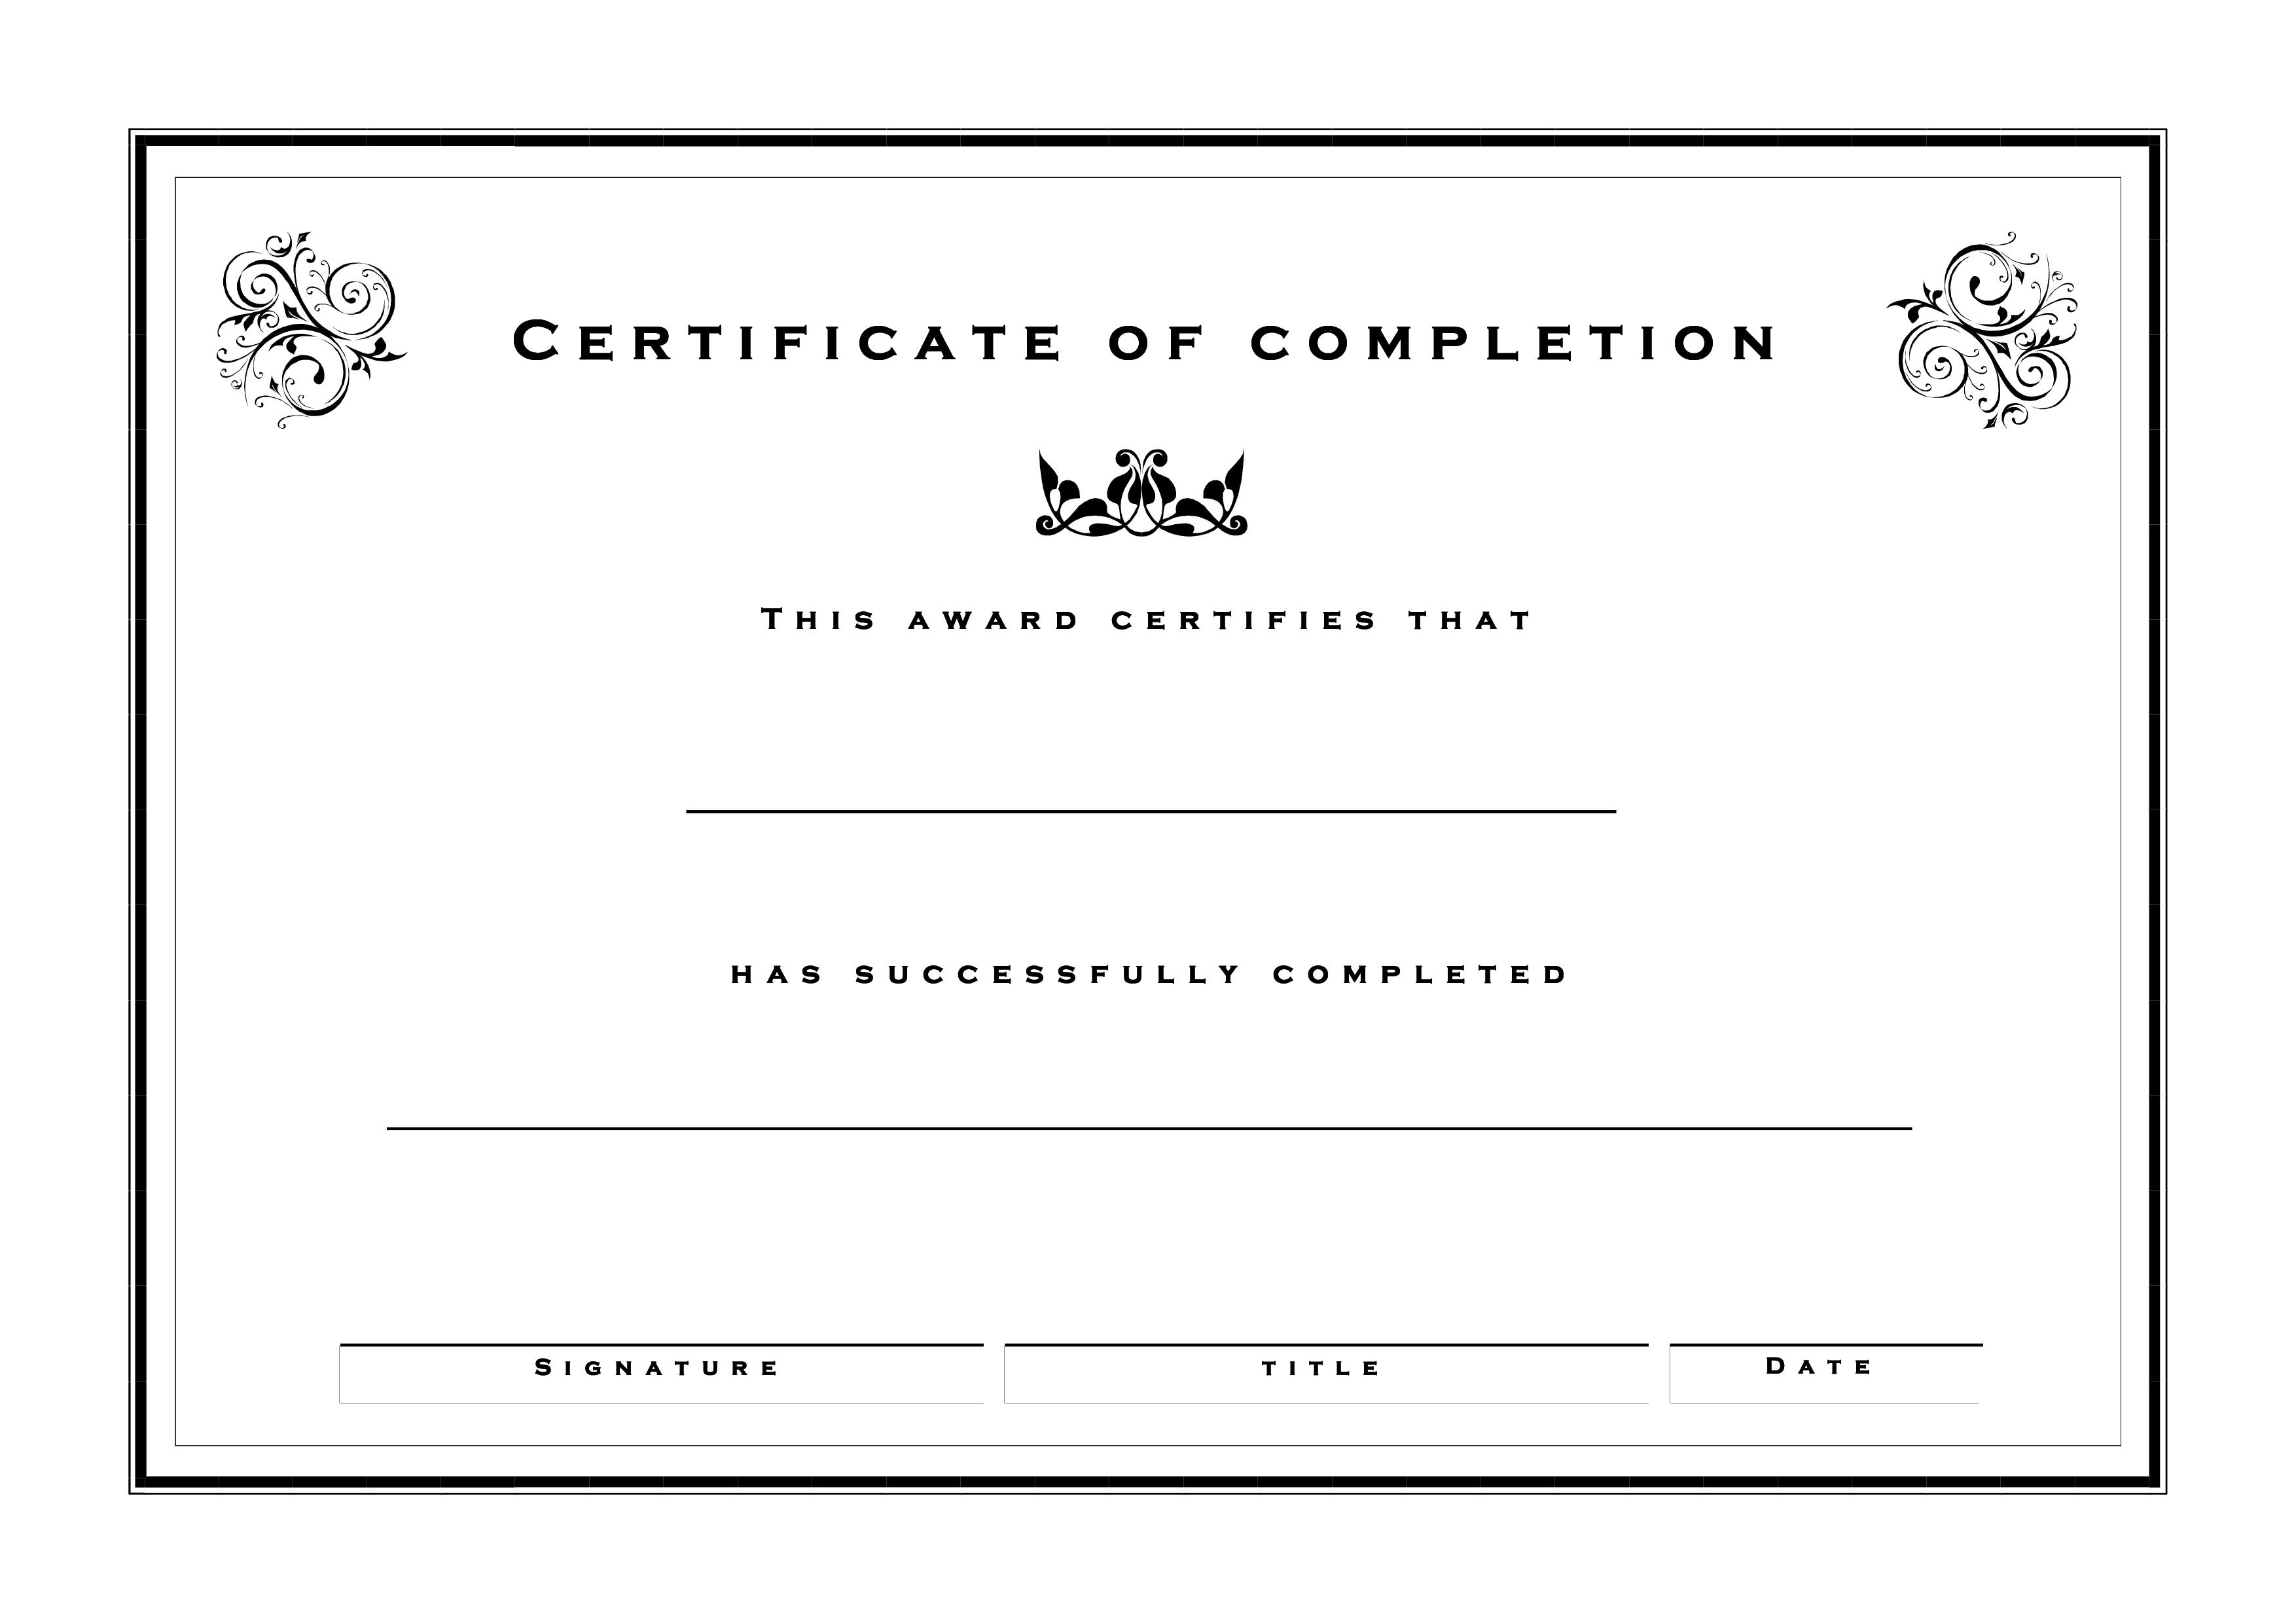 000 Archaicawful Free Certificate Of Completion Template Inspiration  Blank Printable Download Word PdfFull